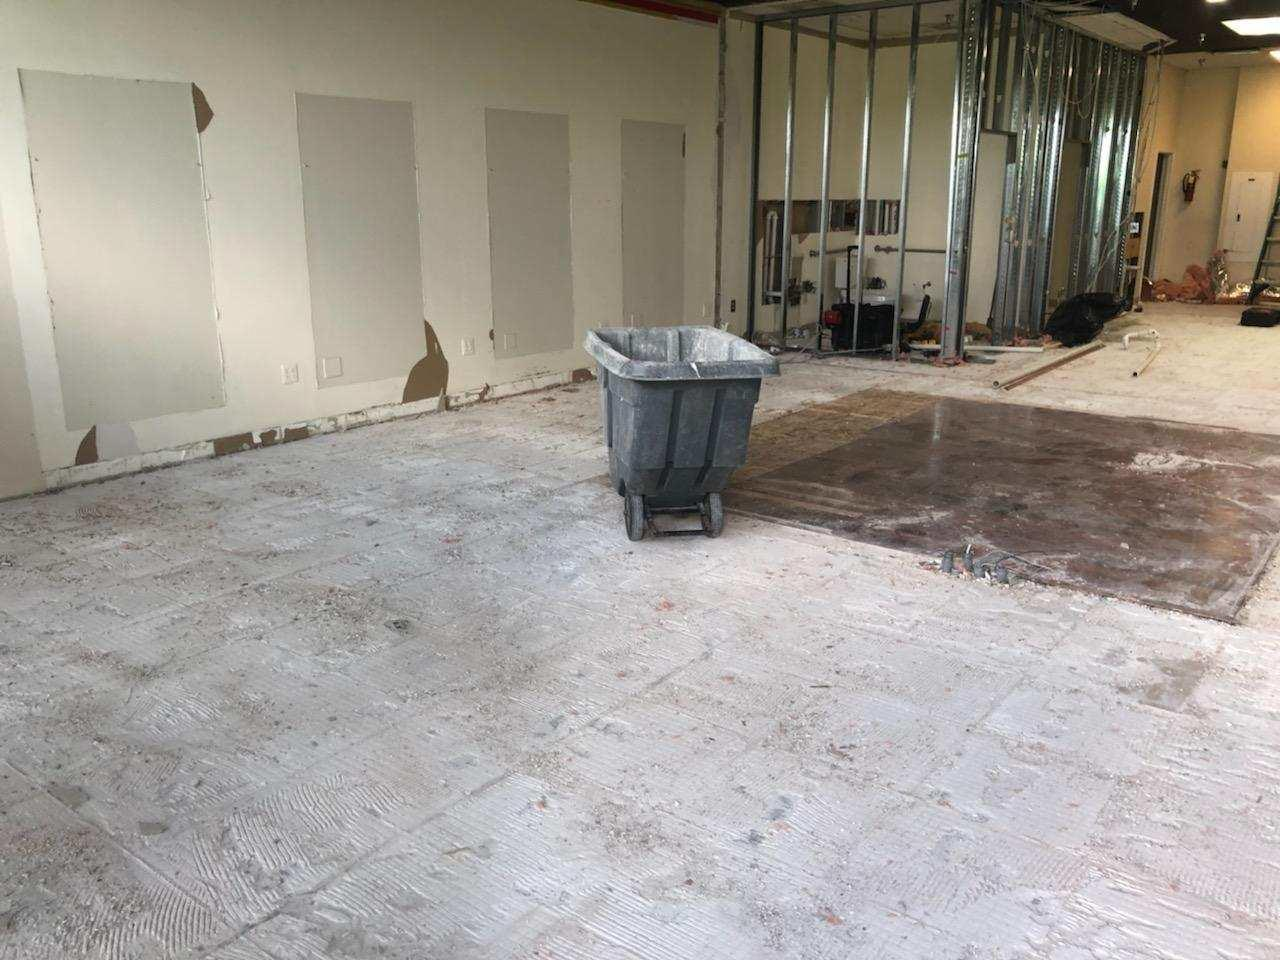 Commercial Office Cleanout in Bristow, VA - After Photo